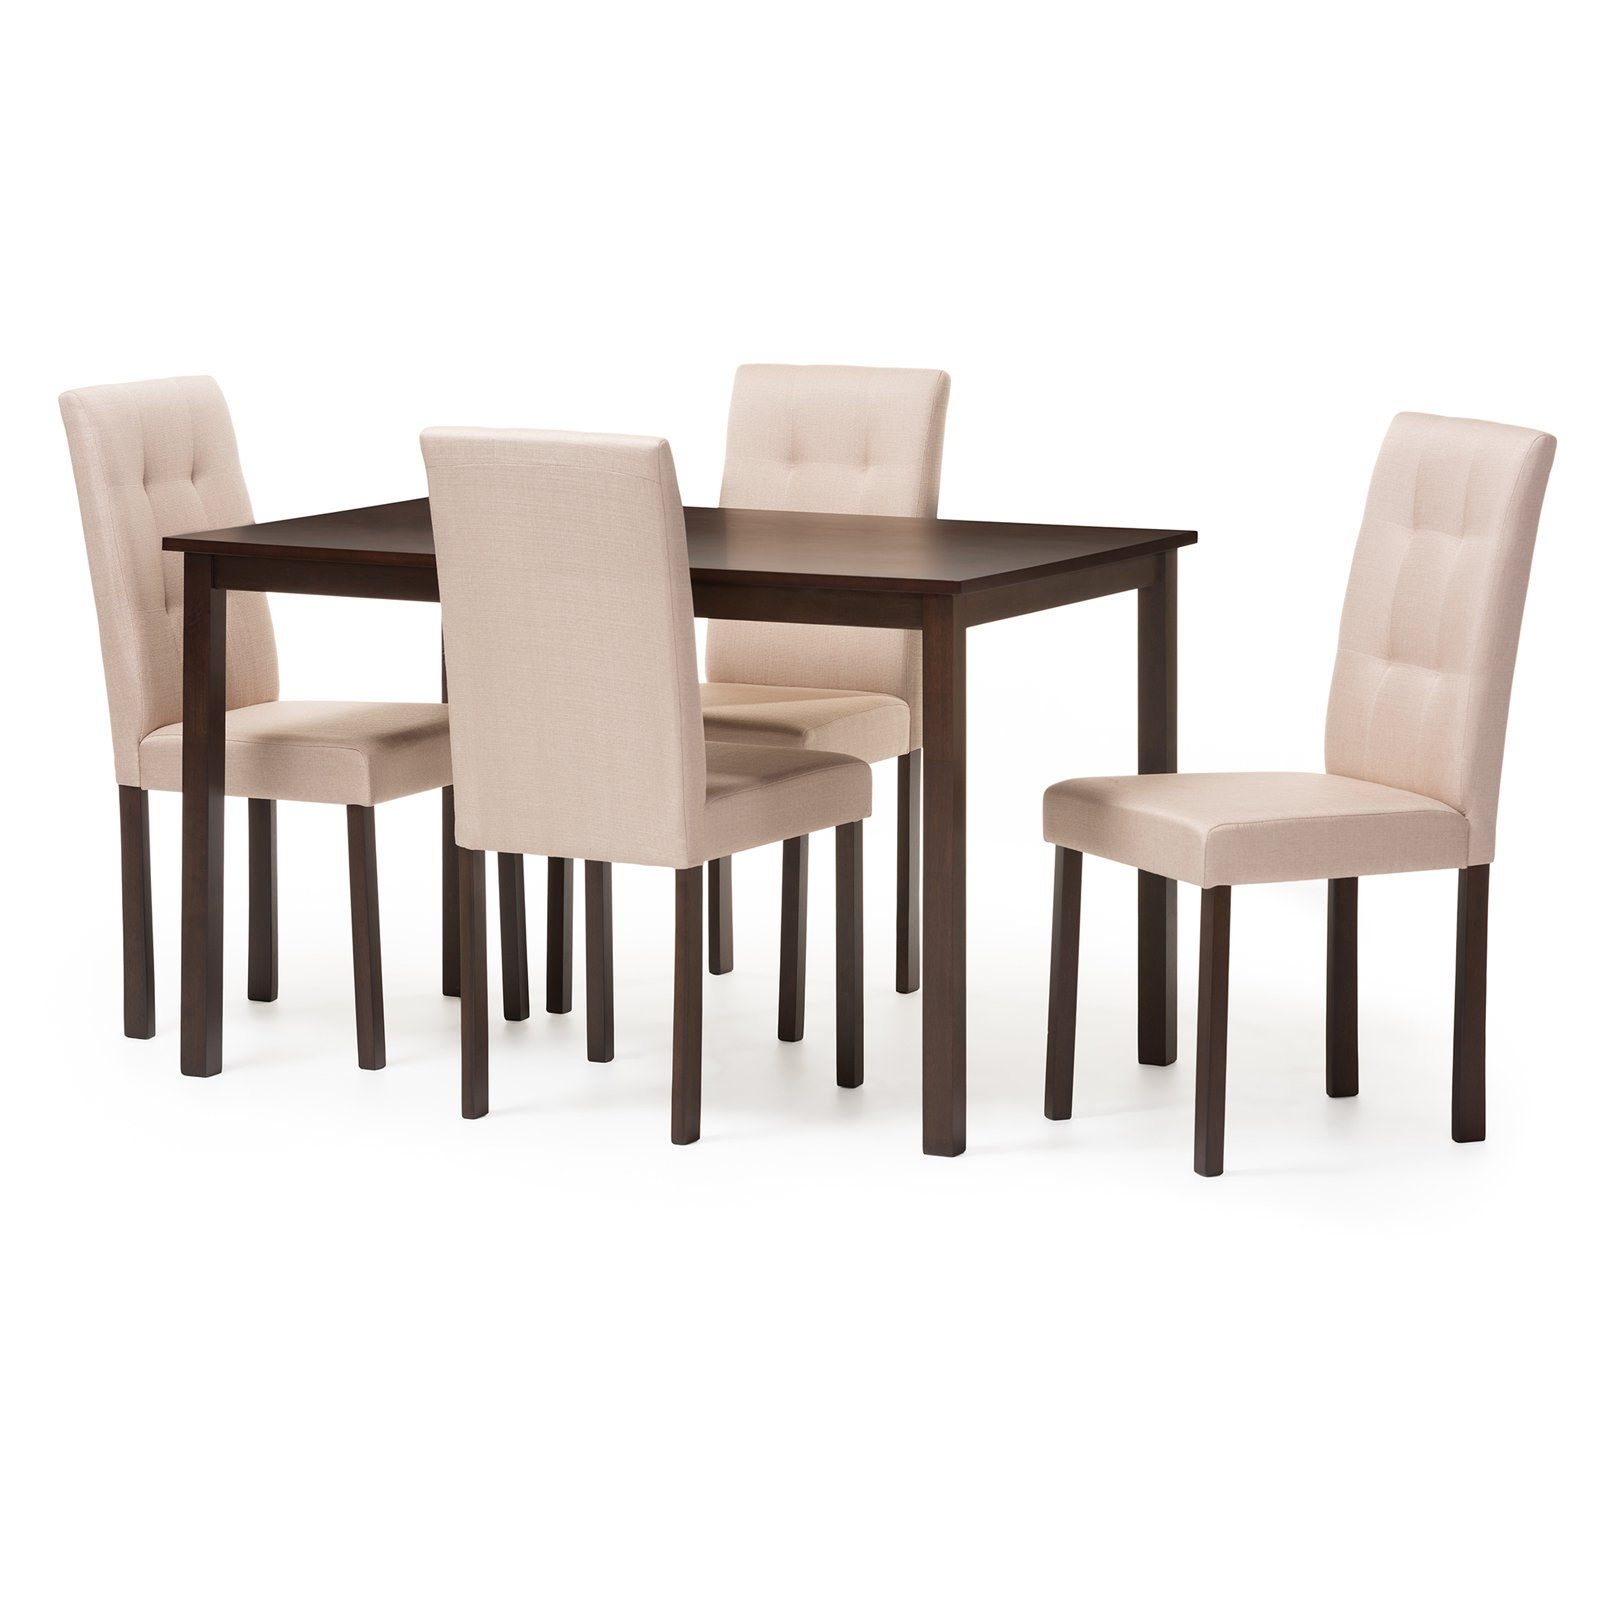 Baxton Studio Andrew Modern and Contemporary 5-Piece Upholstered Grid-tufting Dining Set, Multiple colors